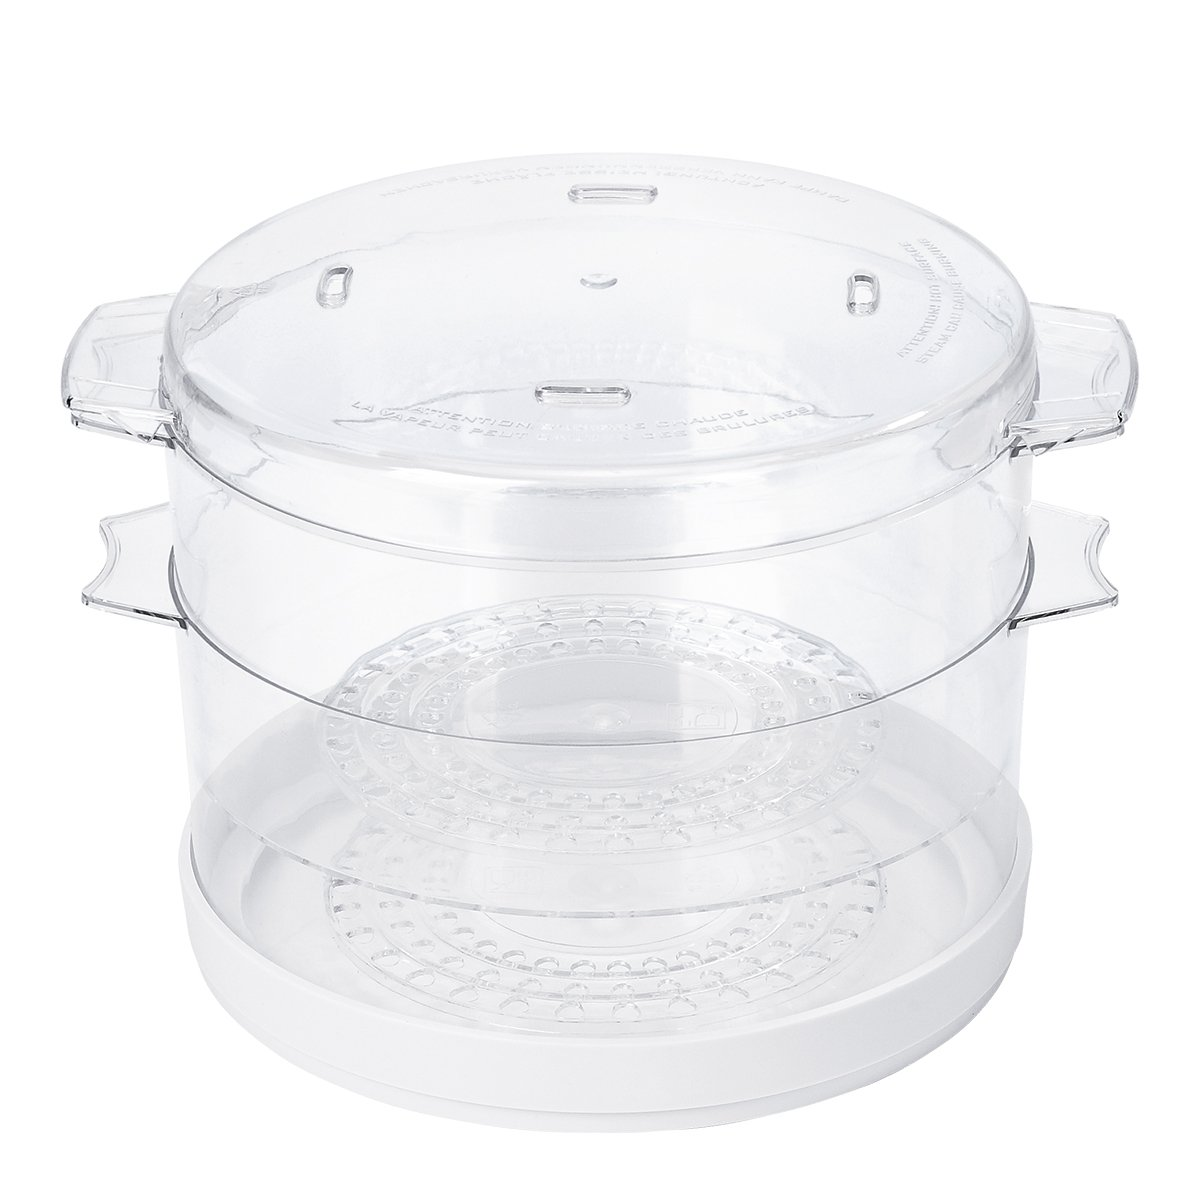 Amazon.com: Oster Double Tiered Food Steamer, 5 Quart, White  (CKSTSTMD5-W-015): Kitchen & Dining